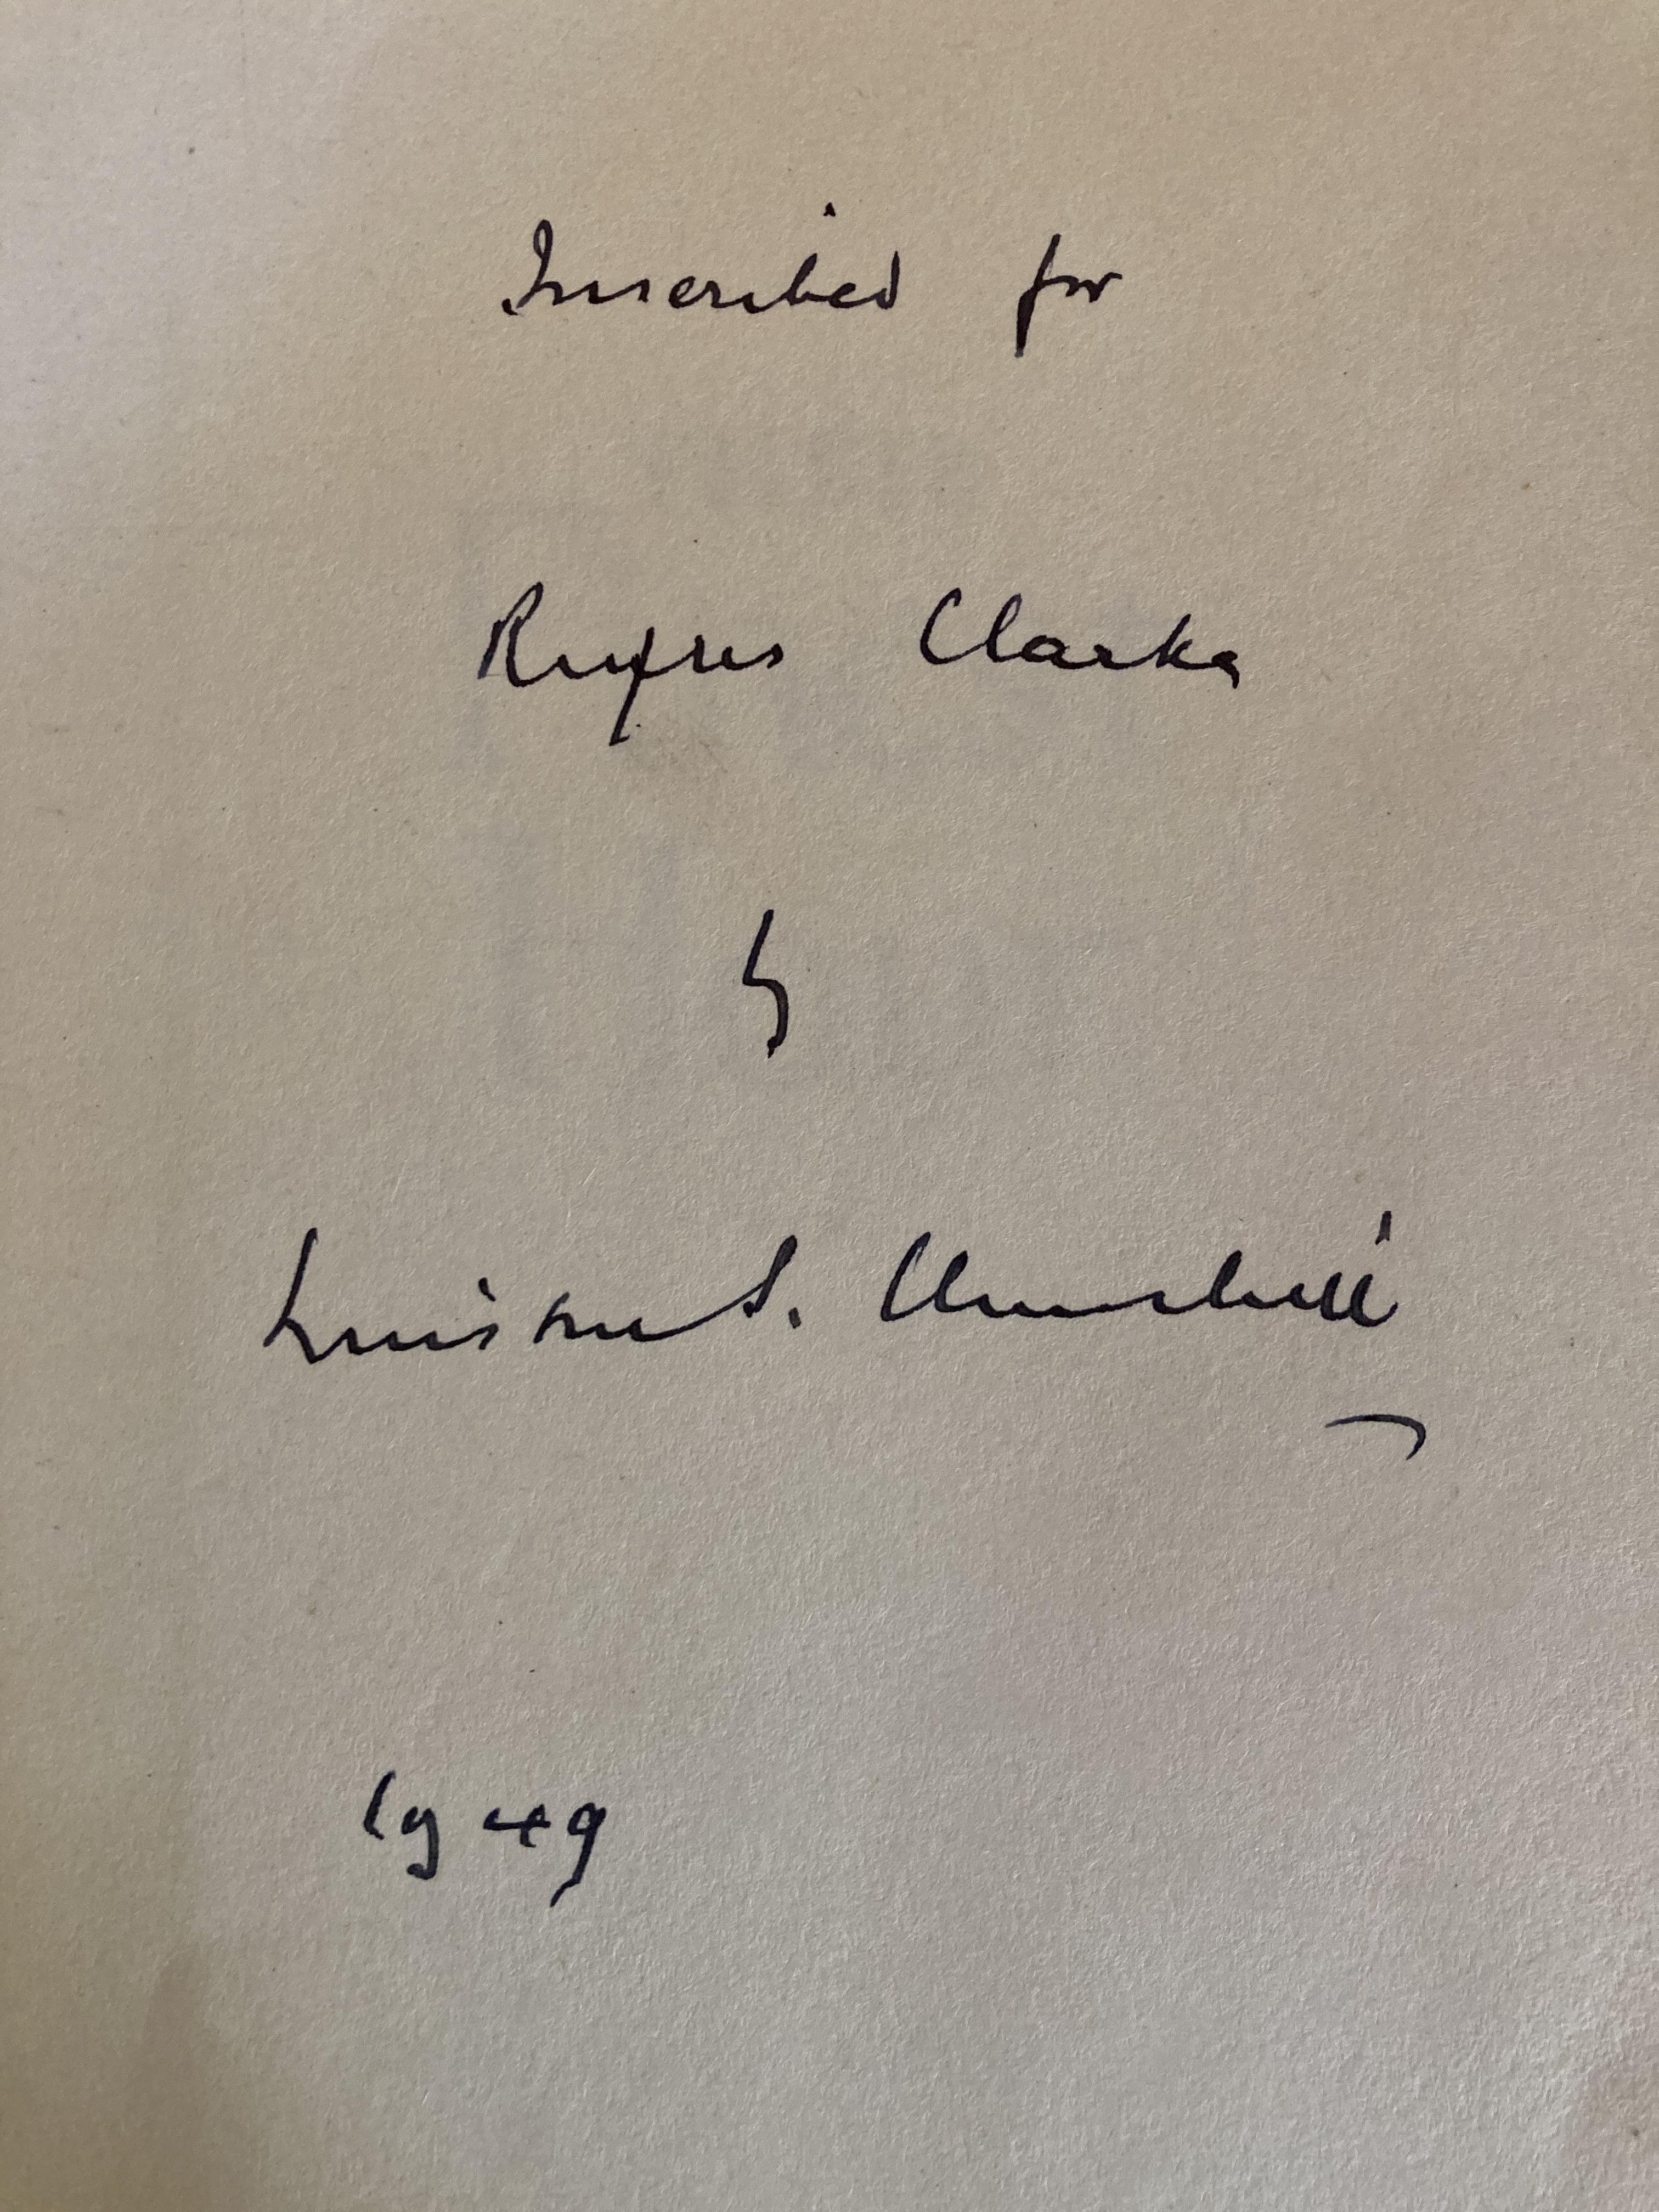 Signed by the Authorÿ Churchill (Winston S.)ÿTheir Finest Hour, Second World War, Vol. II only, - Image 2 of 22